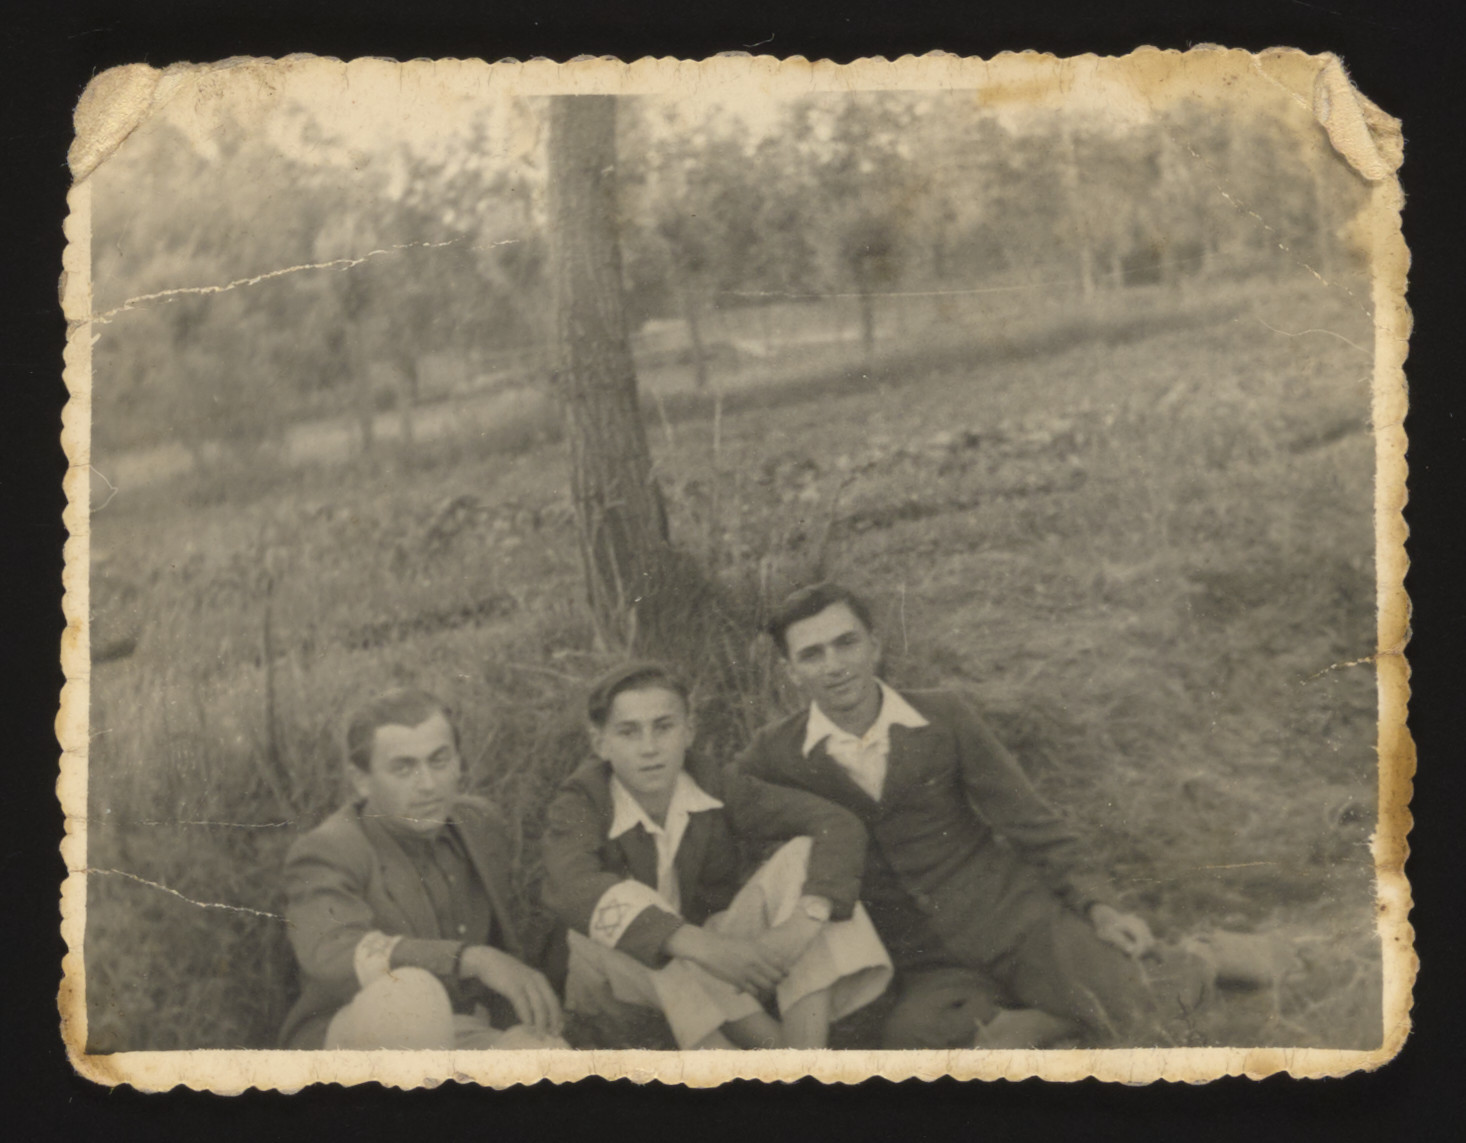 """Three young Jewish men wearing armbands with a Jewish star sit in the grass under a tree in the Kozienice ghetto.  Jakub Spiegel is on the left; Baruch (Buzek) Szabason is in the middle.  Jakub and Buzek both perished.  The Polish inscription on the back reads """"This picture was taken in June 1942.  This is a picture of my beloved and favorite son Buzek."""""""